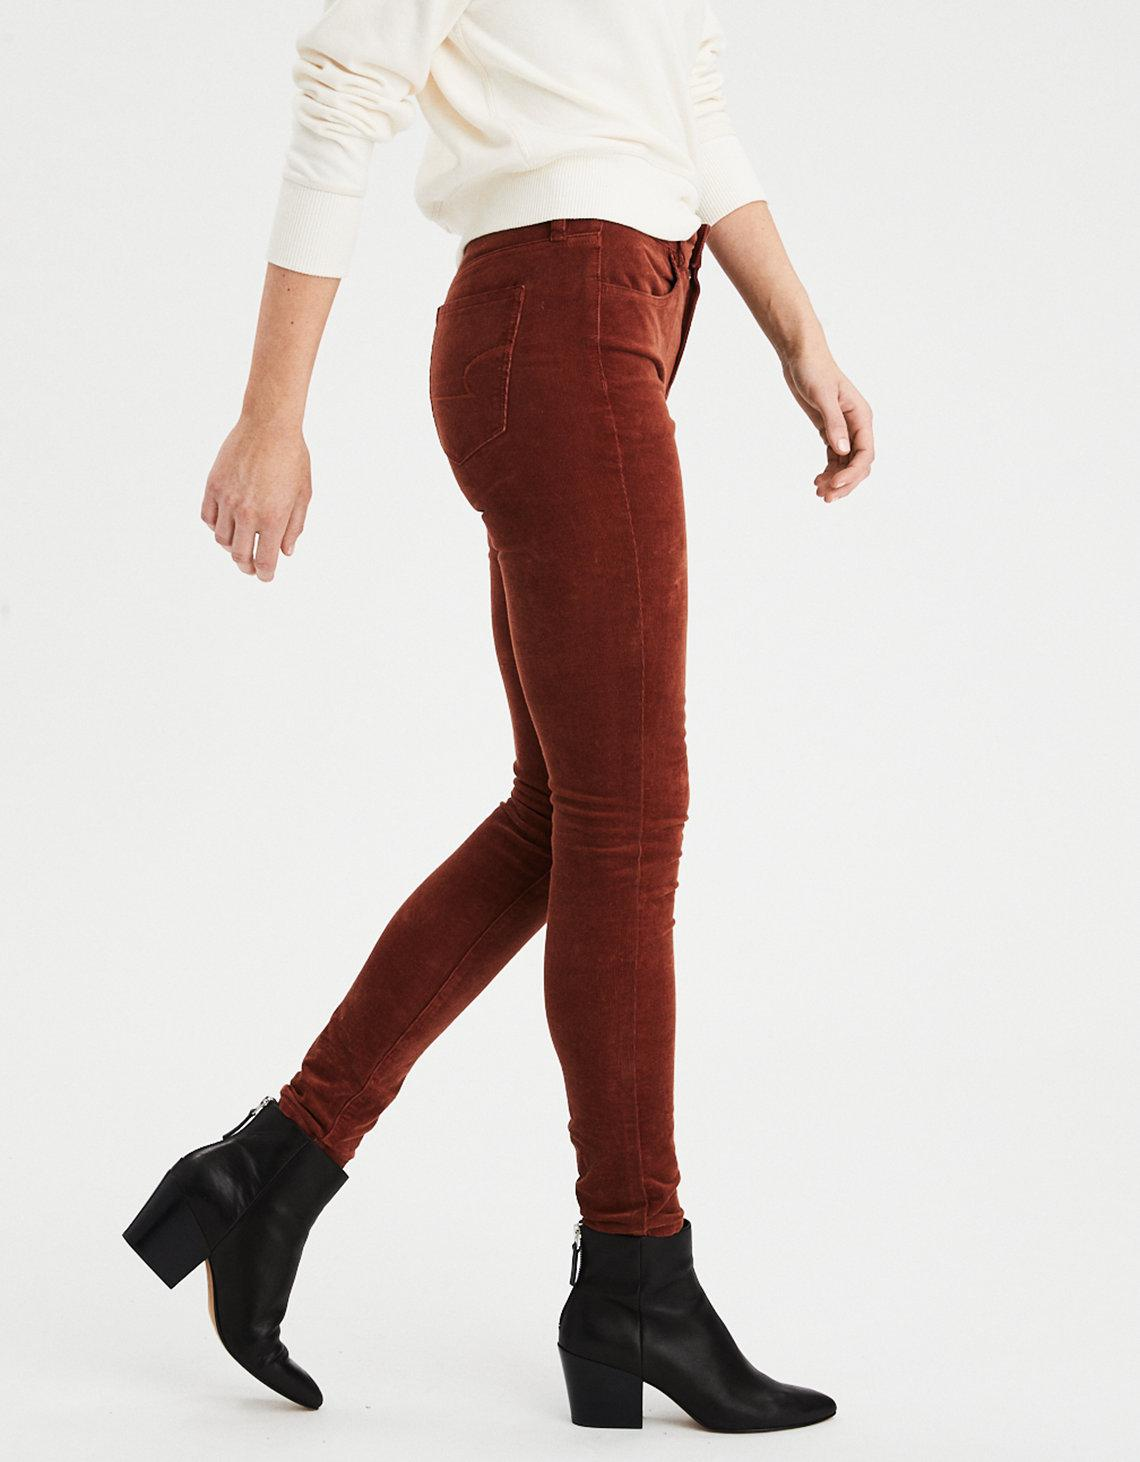 c52899a72a9b51 American Eagle High-waisted Corduroy Jegging in Red - Lyst